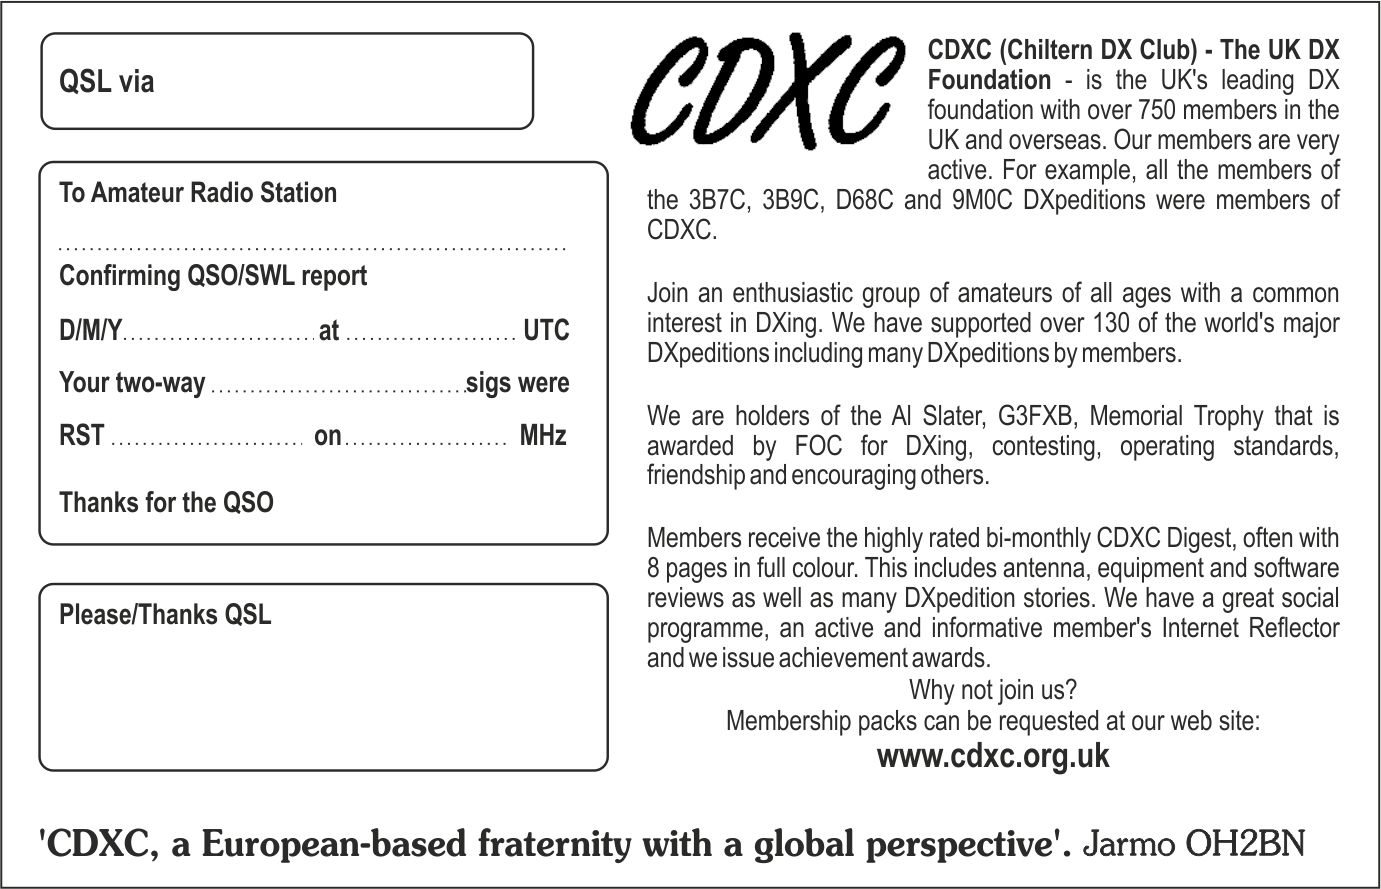 CDXC - The UK DX Foundation - QSL Cards